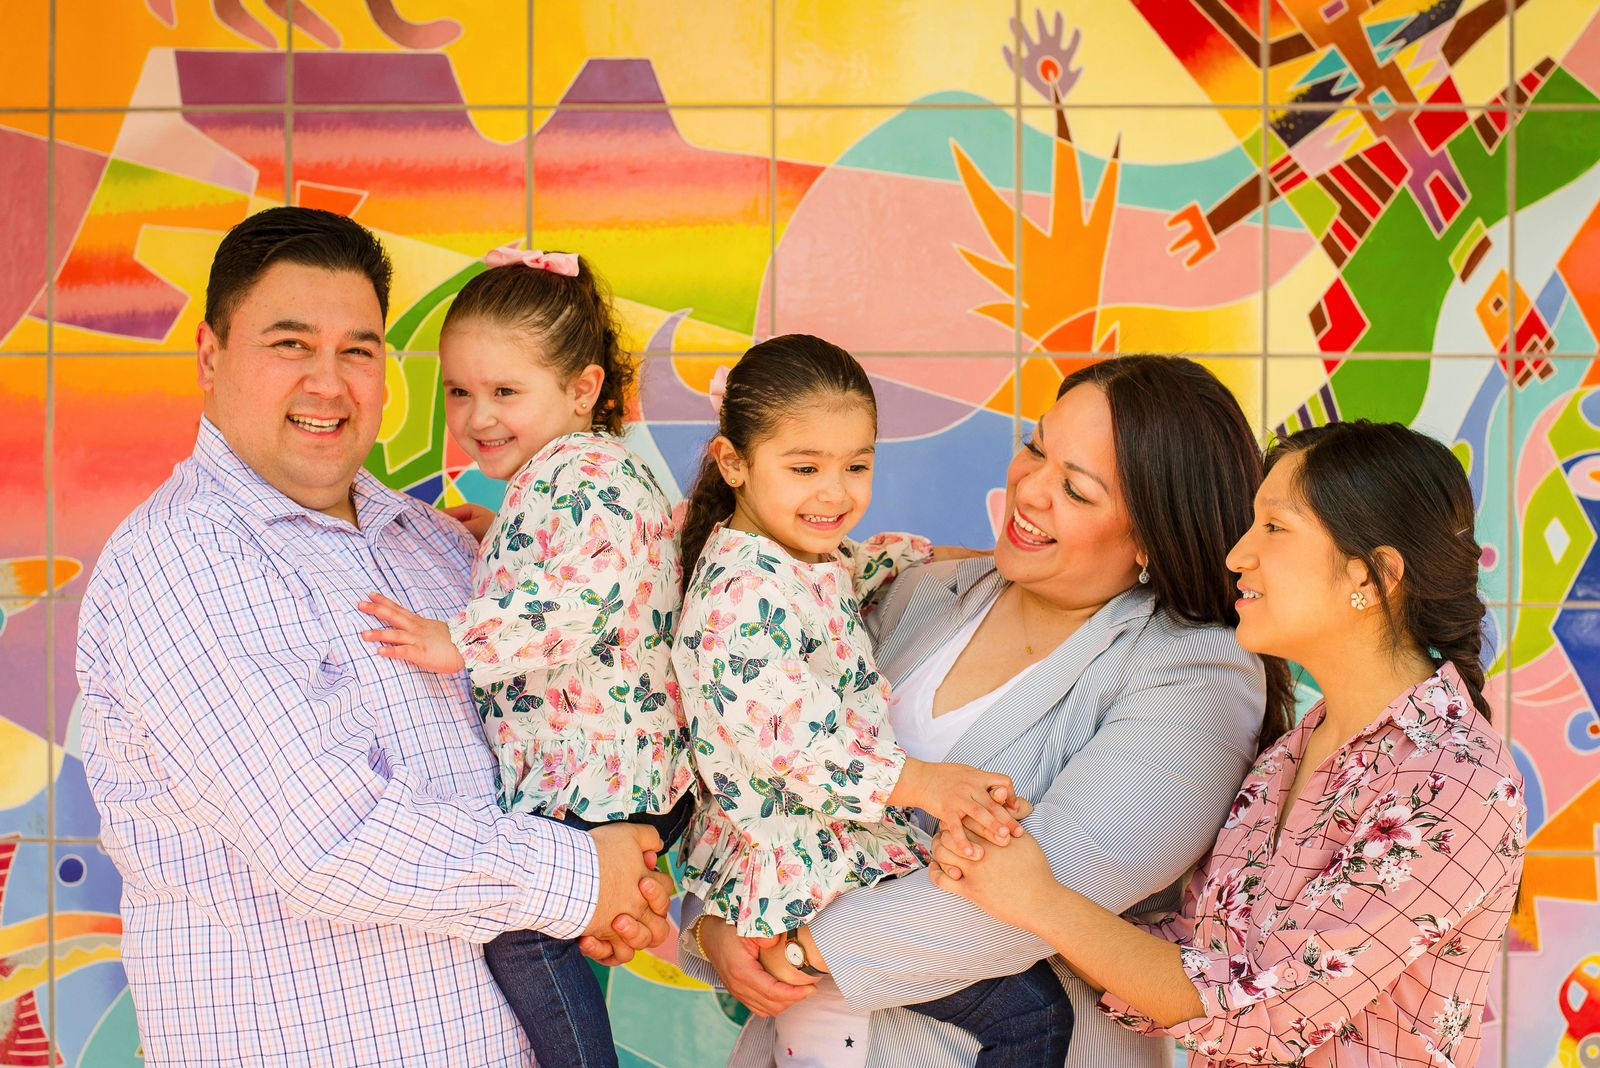 This undated photo provided by the Luz Escamilla Campaign shows Utah lawmaker and Salt Lake City former mayoral candidate Luz Escamilla with her husband Juan Carlos and three of her children, Aileen, Sol and Cielo, in Salt Lake City. She was among the first candidates to use a new Utah law that allows campaign money to be used for childcare. A small but growing number of states are passing similar measures, something that advocates say will allow more women to run for office amid a historic rise in the number of female candidates around the country. (Brandon Cruz/Luz Escamilla Campaign via AP)